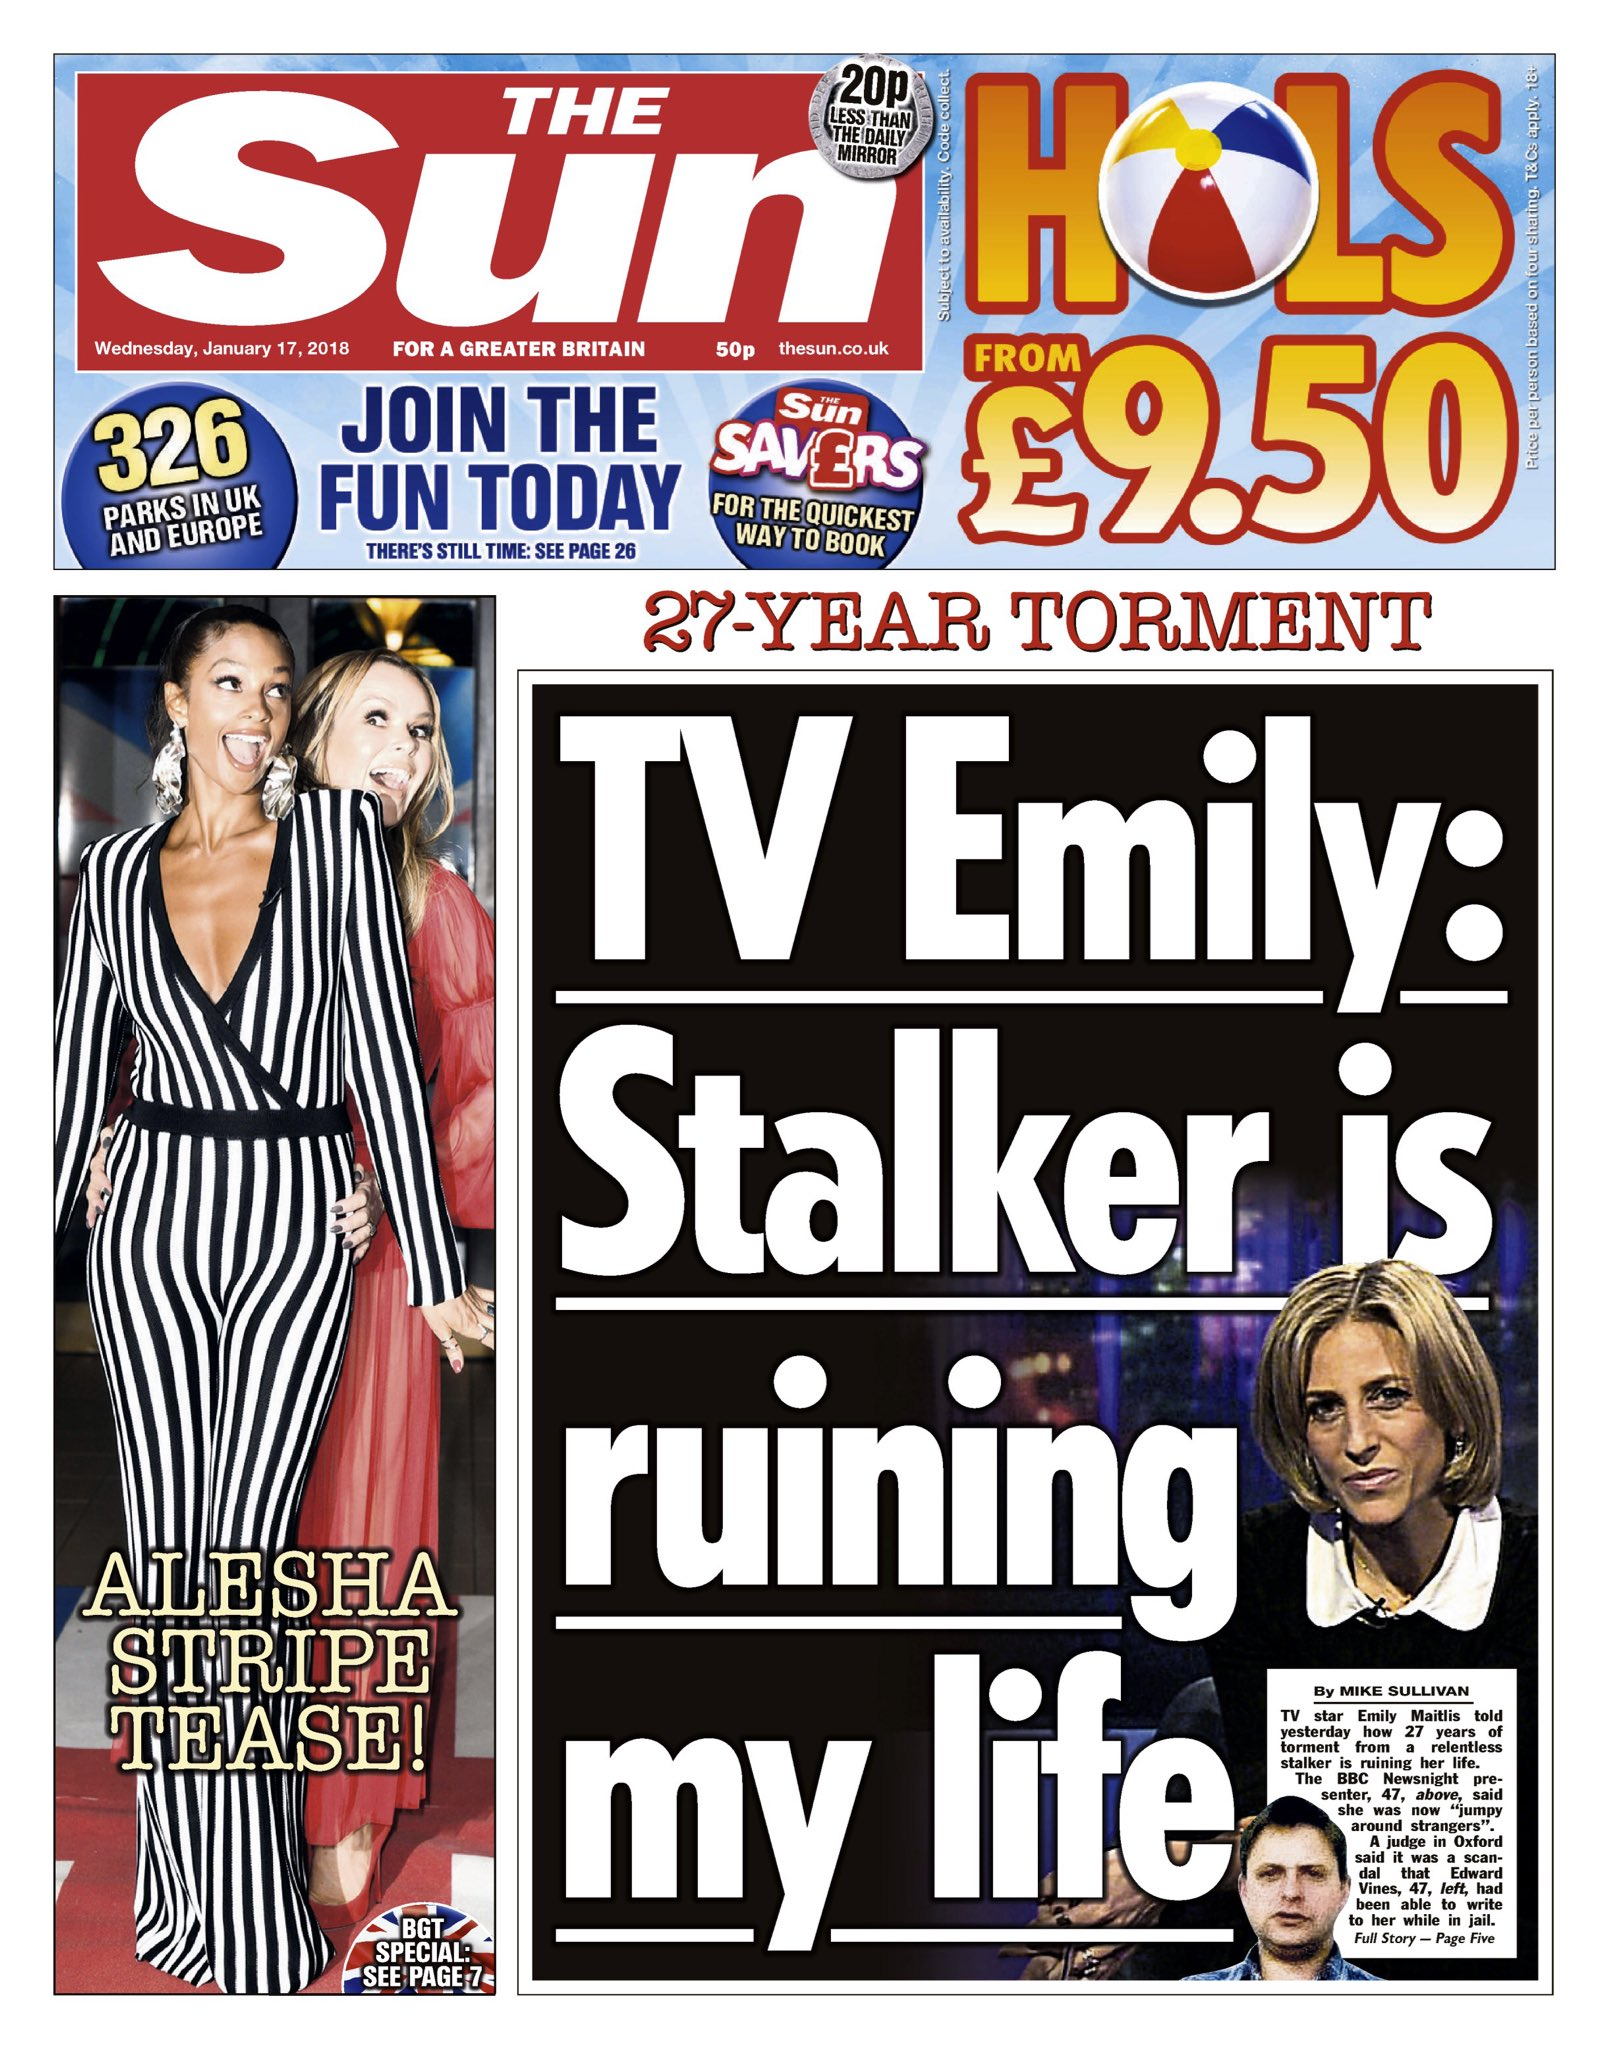 Wednesday's Sun 'TV Emily: Stalker is ruining my life'  #tomorrowspaperstoday #bbcpapers (via @hendopolis) https://t.co/WMdevSofxN